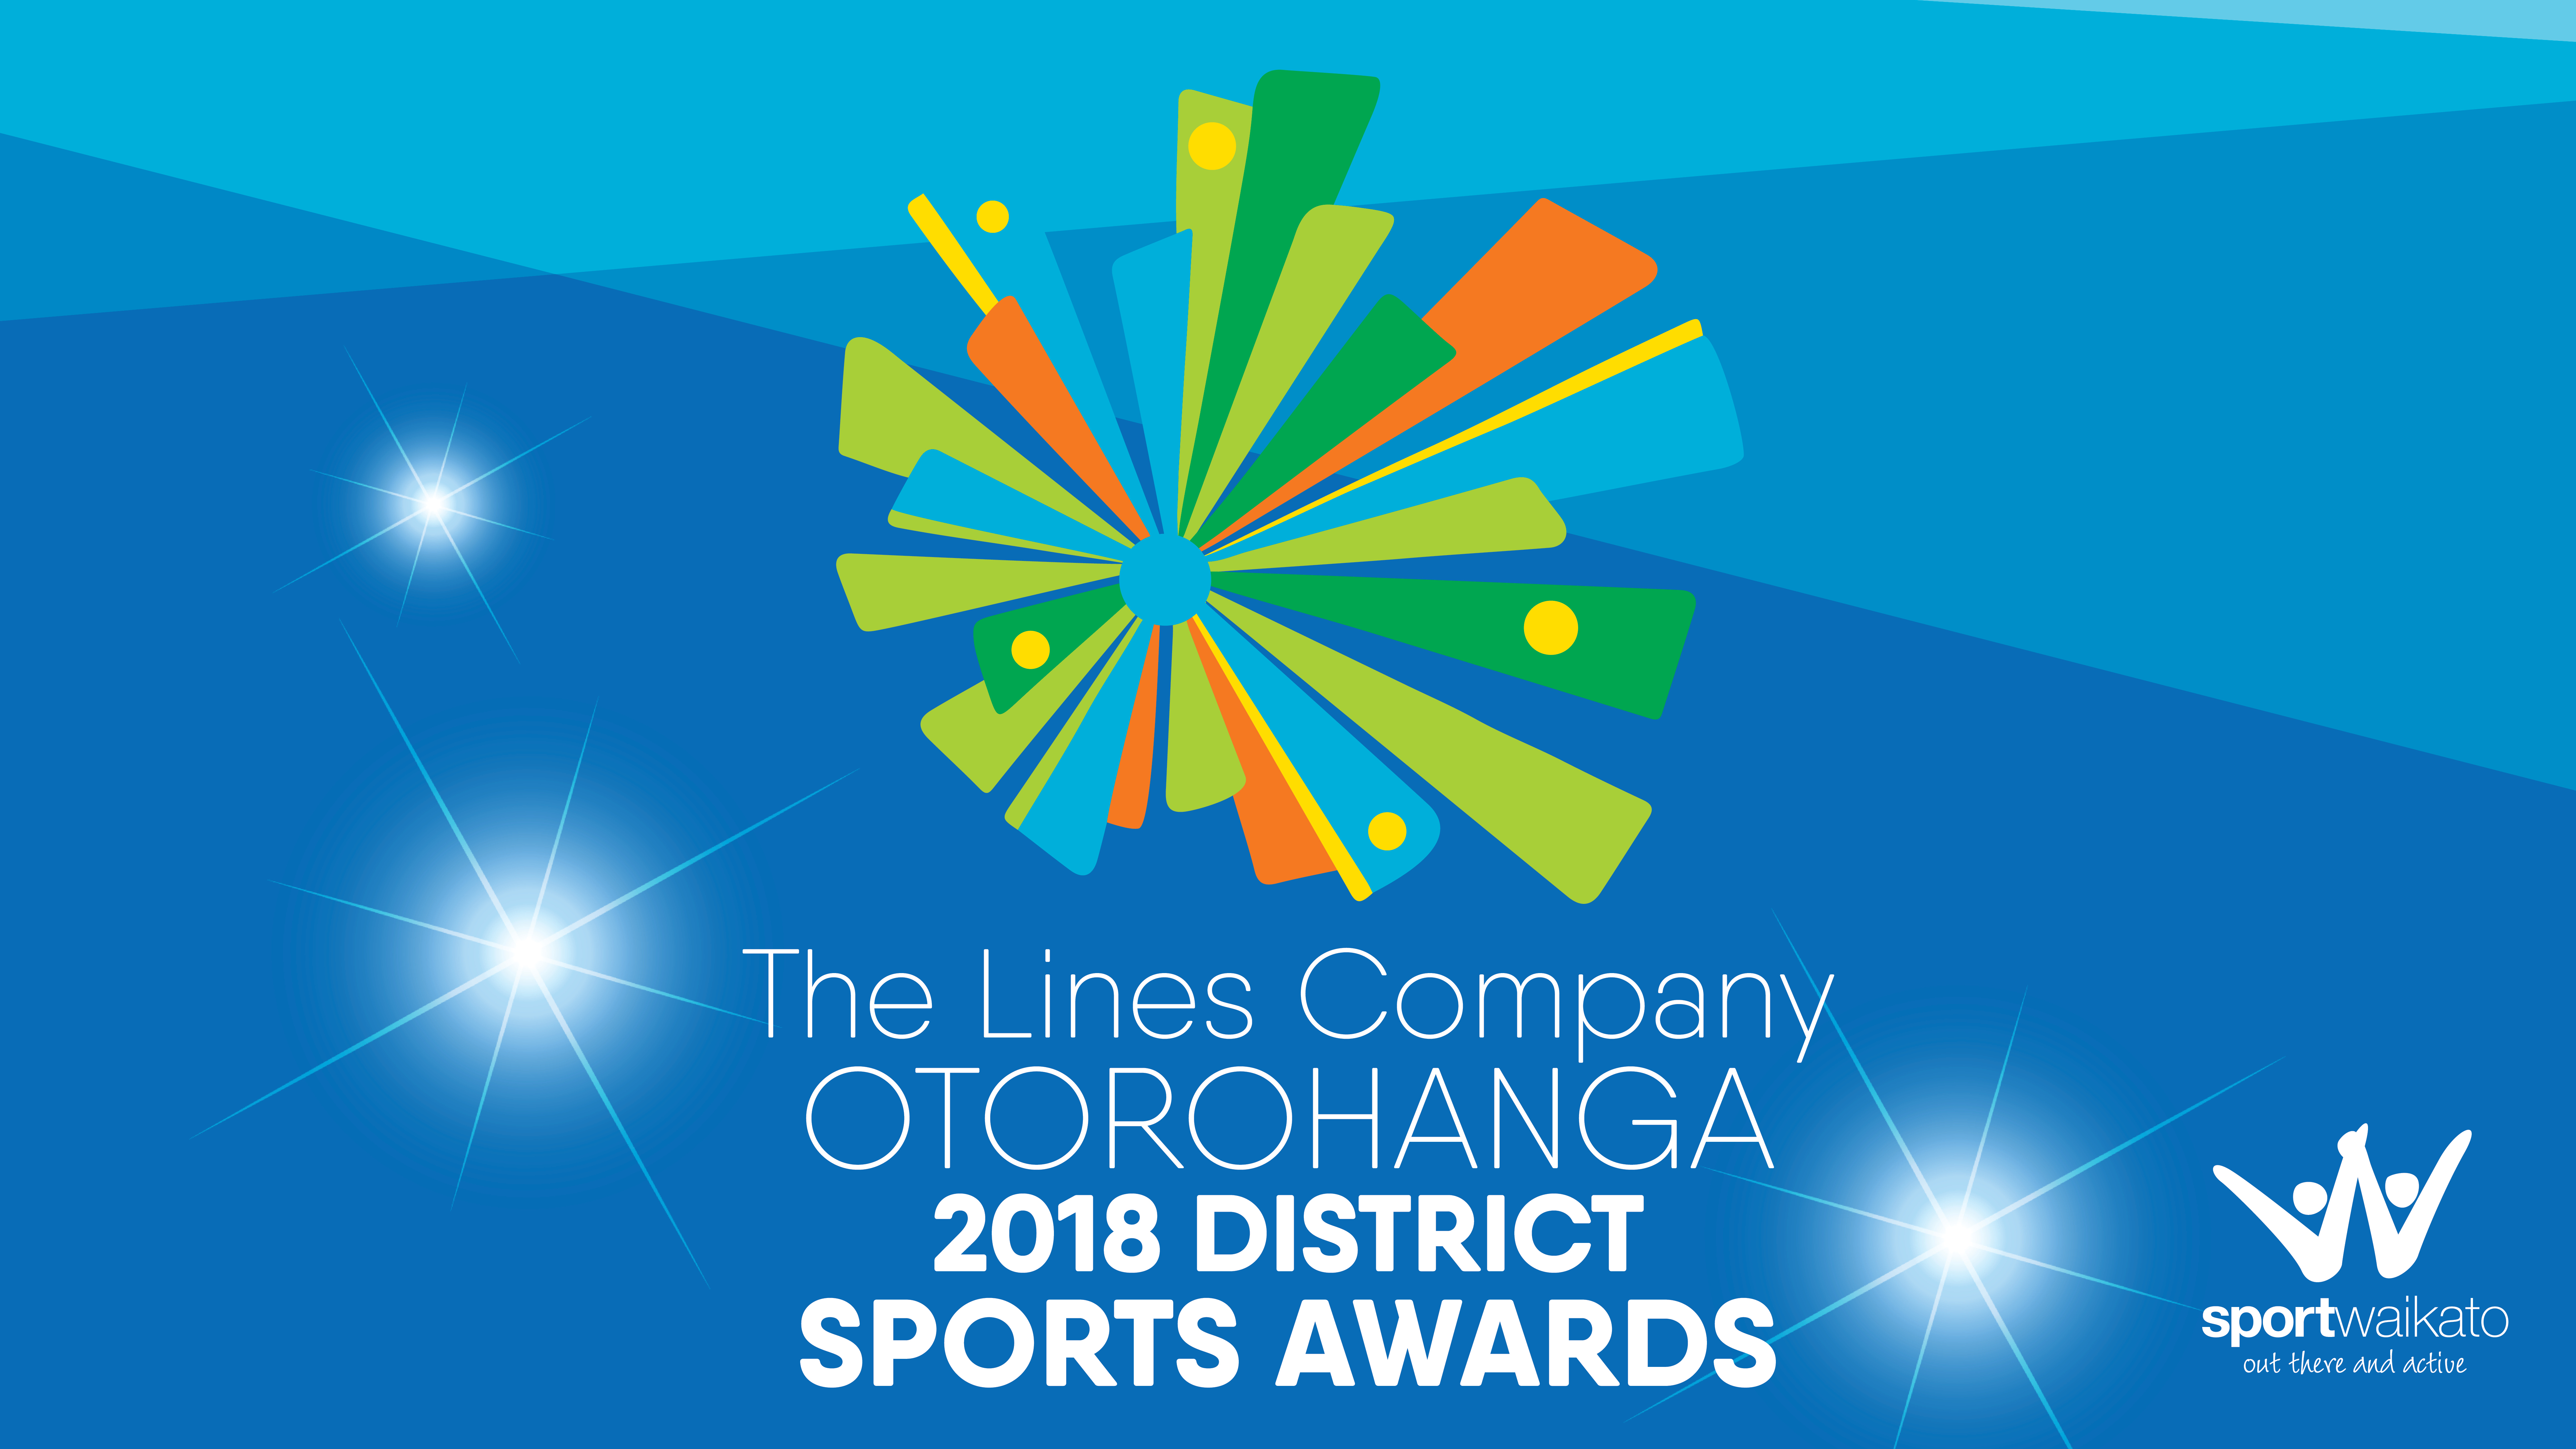 The Lines Company Otorohanga District Sports Awards nominations are in!